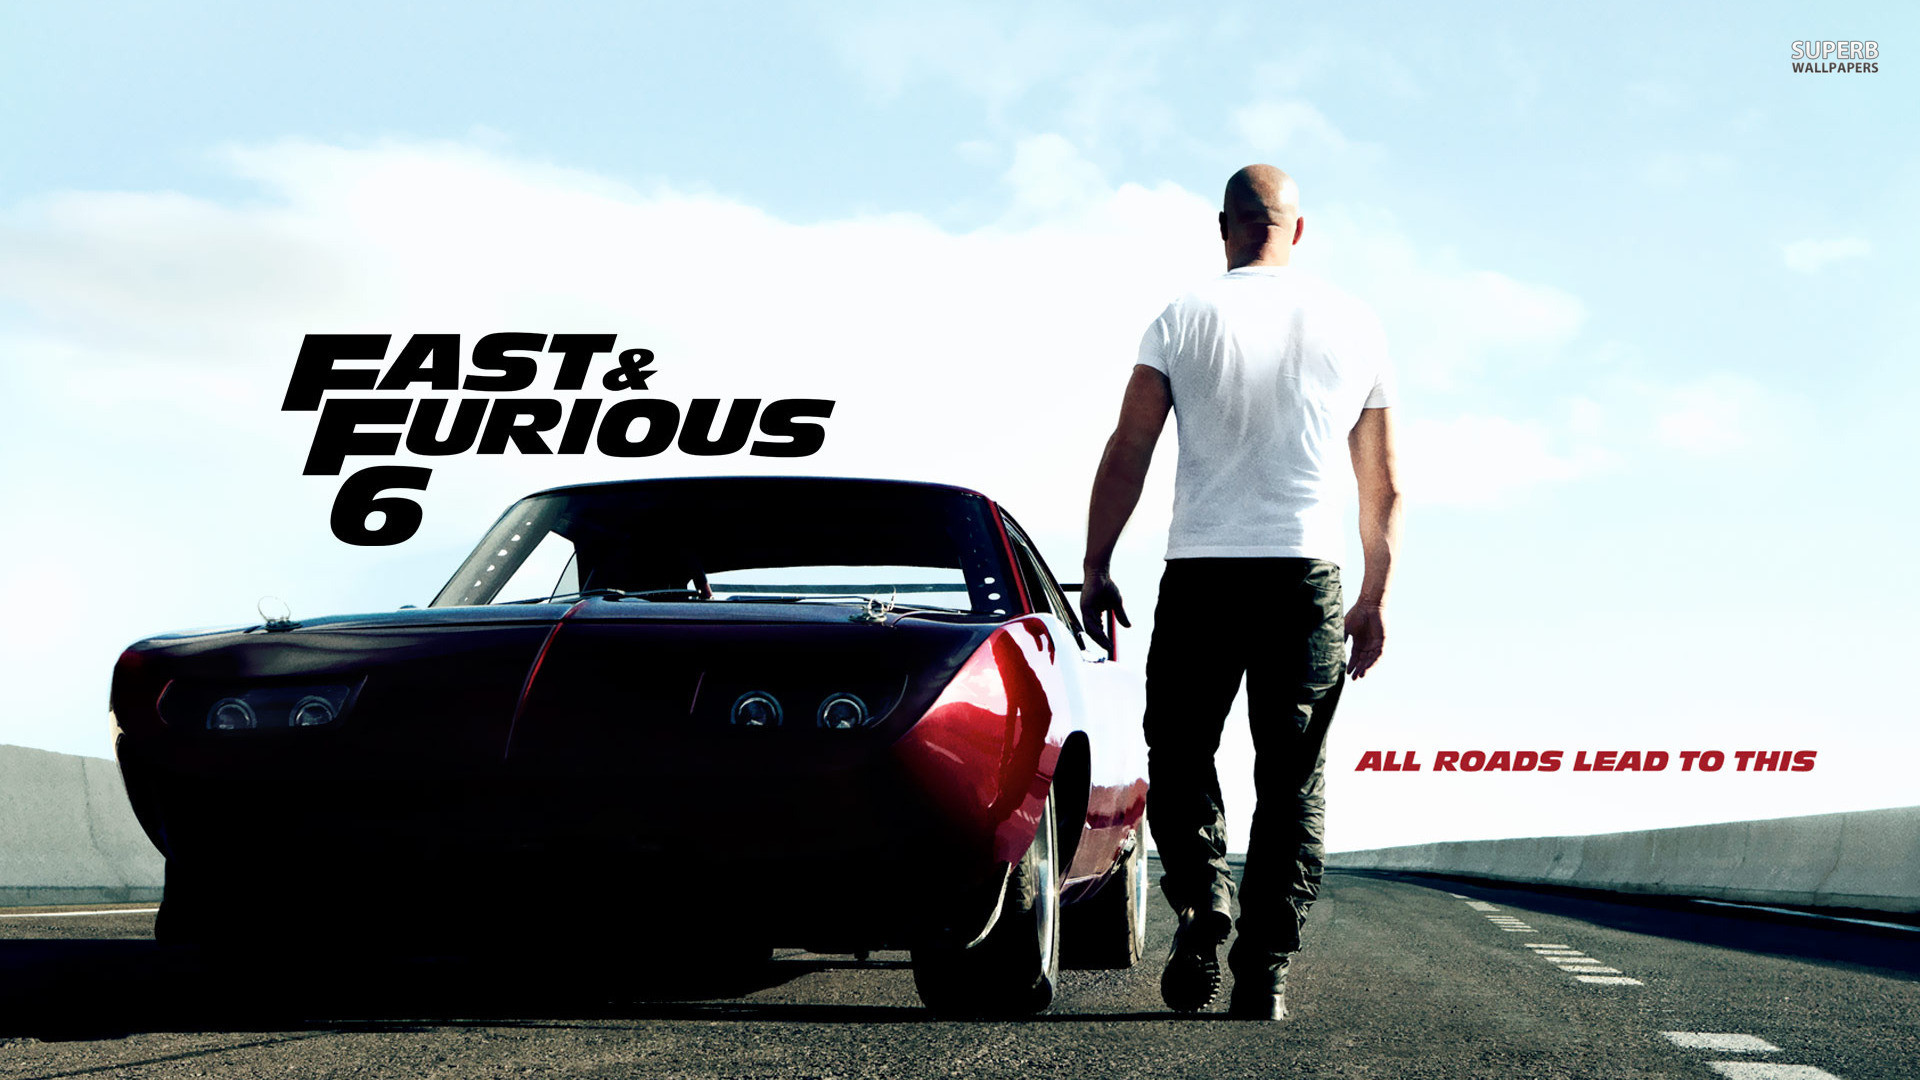 Download Fast And Furious Paul Walker Blue Car Photoshoot ... |Fast And Furious 6 Paul Walker Wallpaper